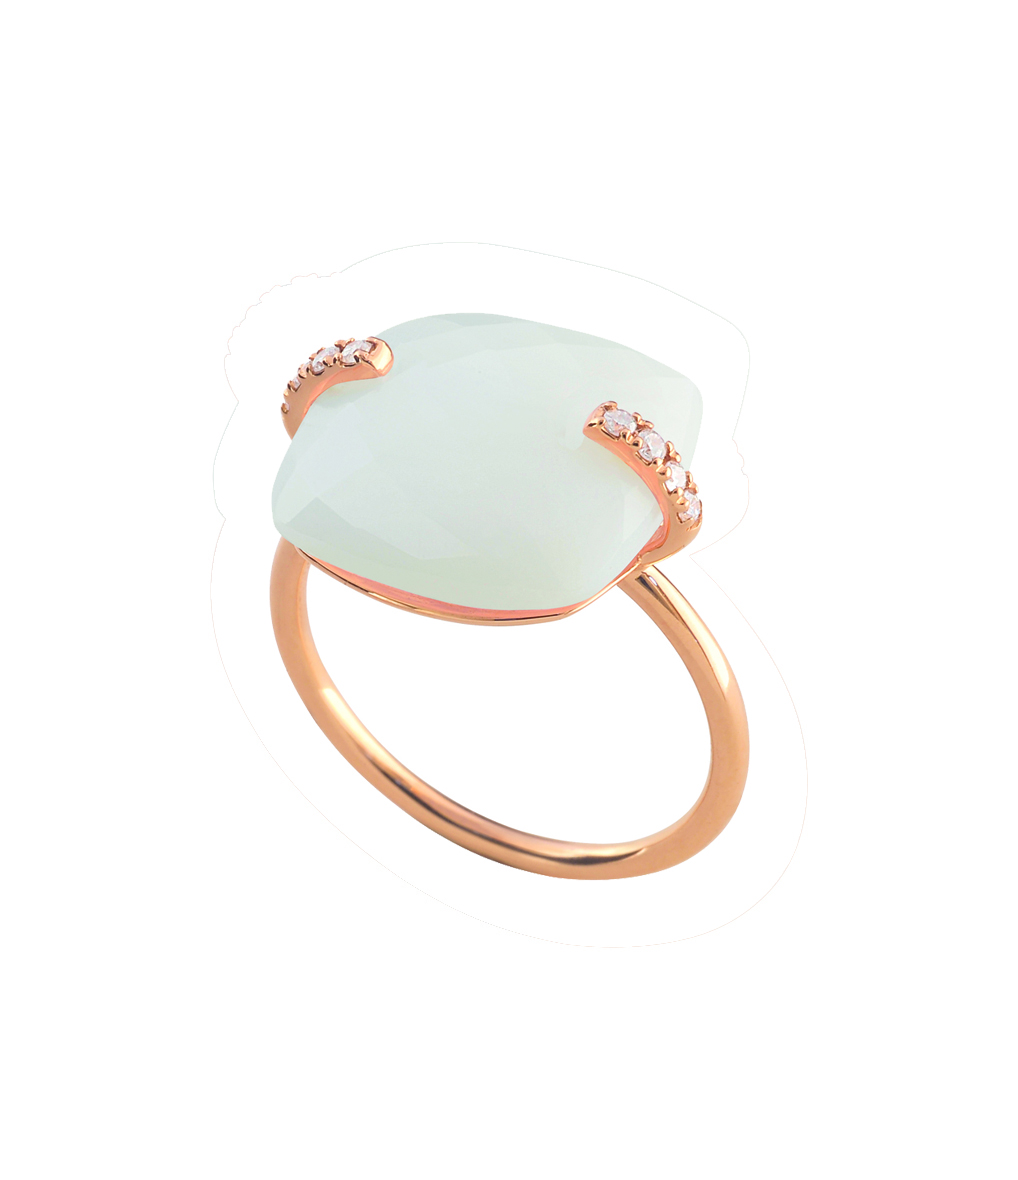 Bague Candy Delice